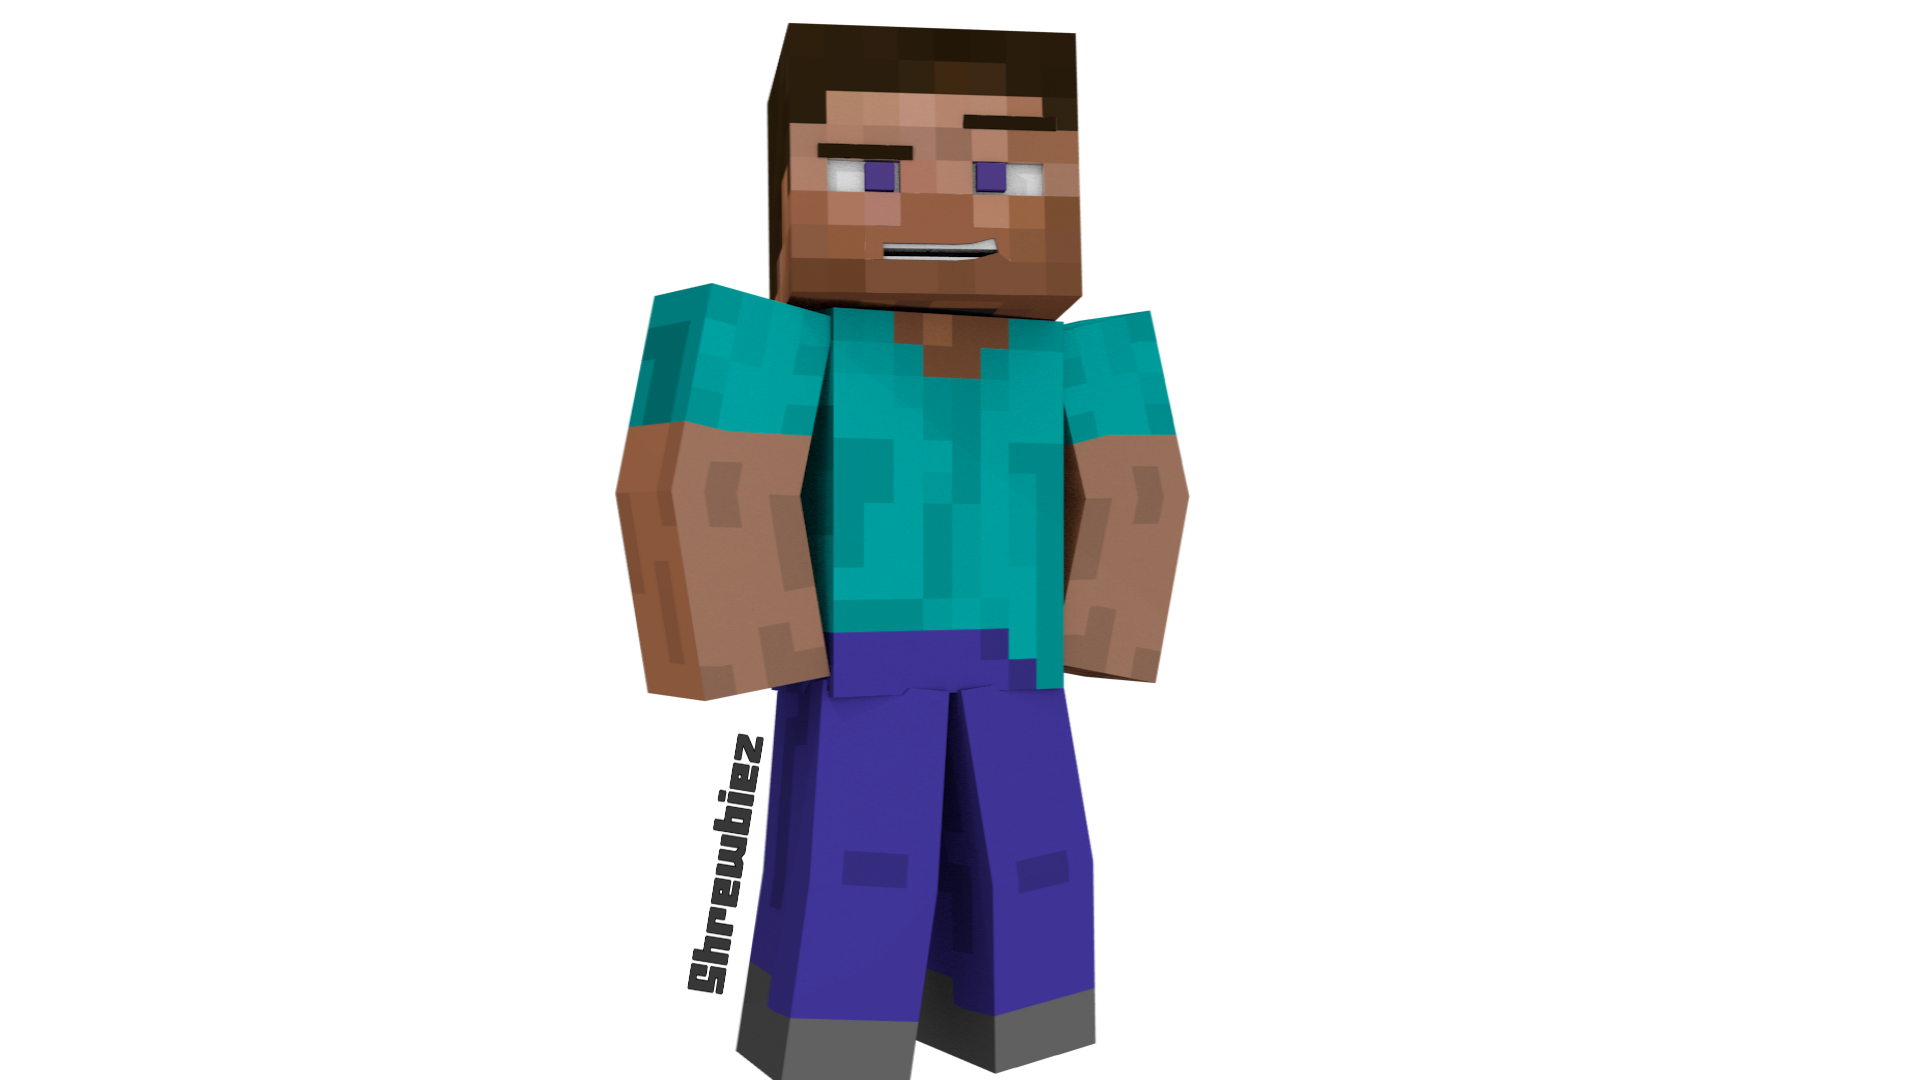 Minecraft Steve Fotolip Com Rich Image And Wallpaper